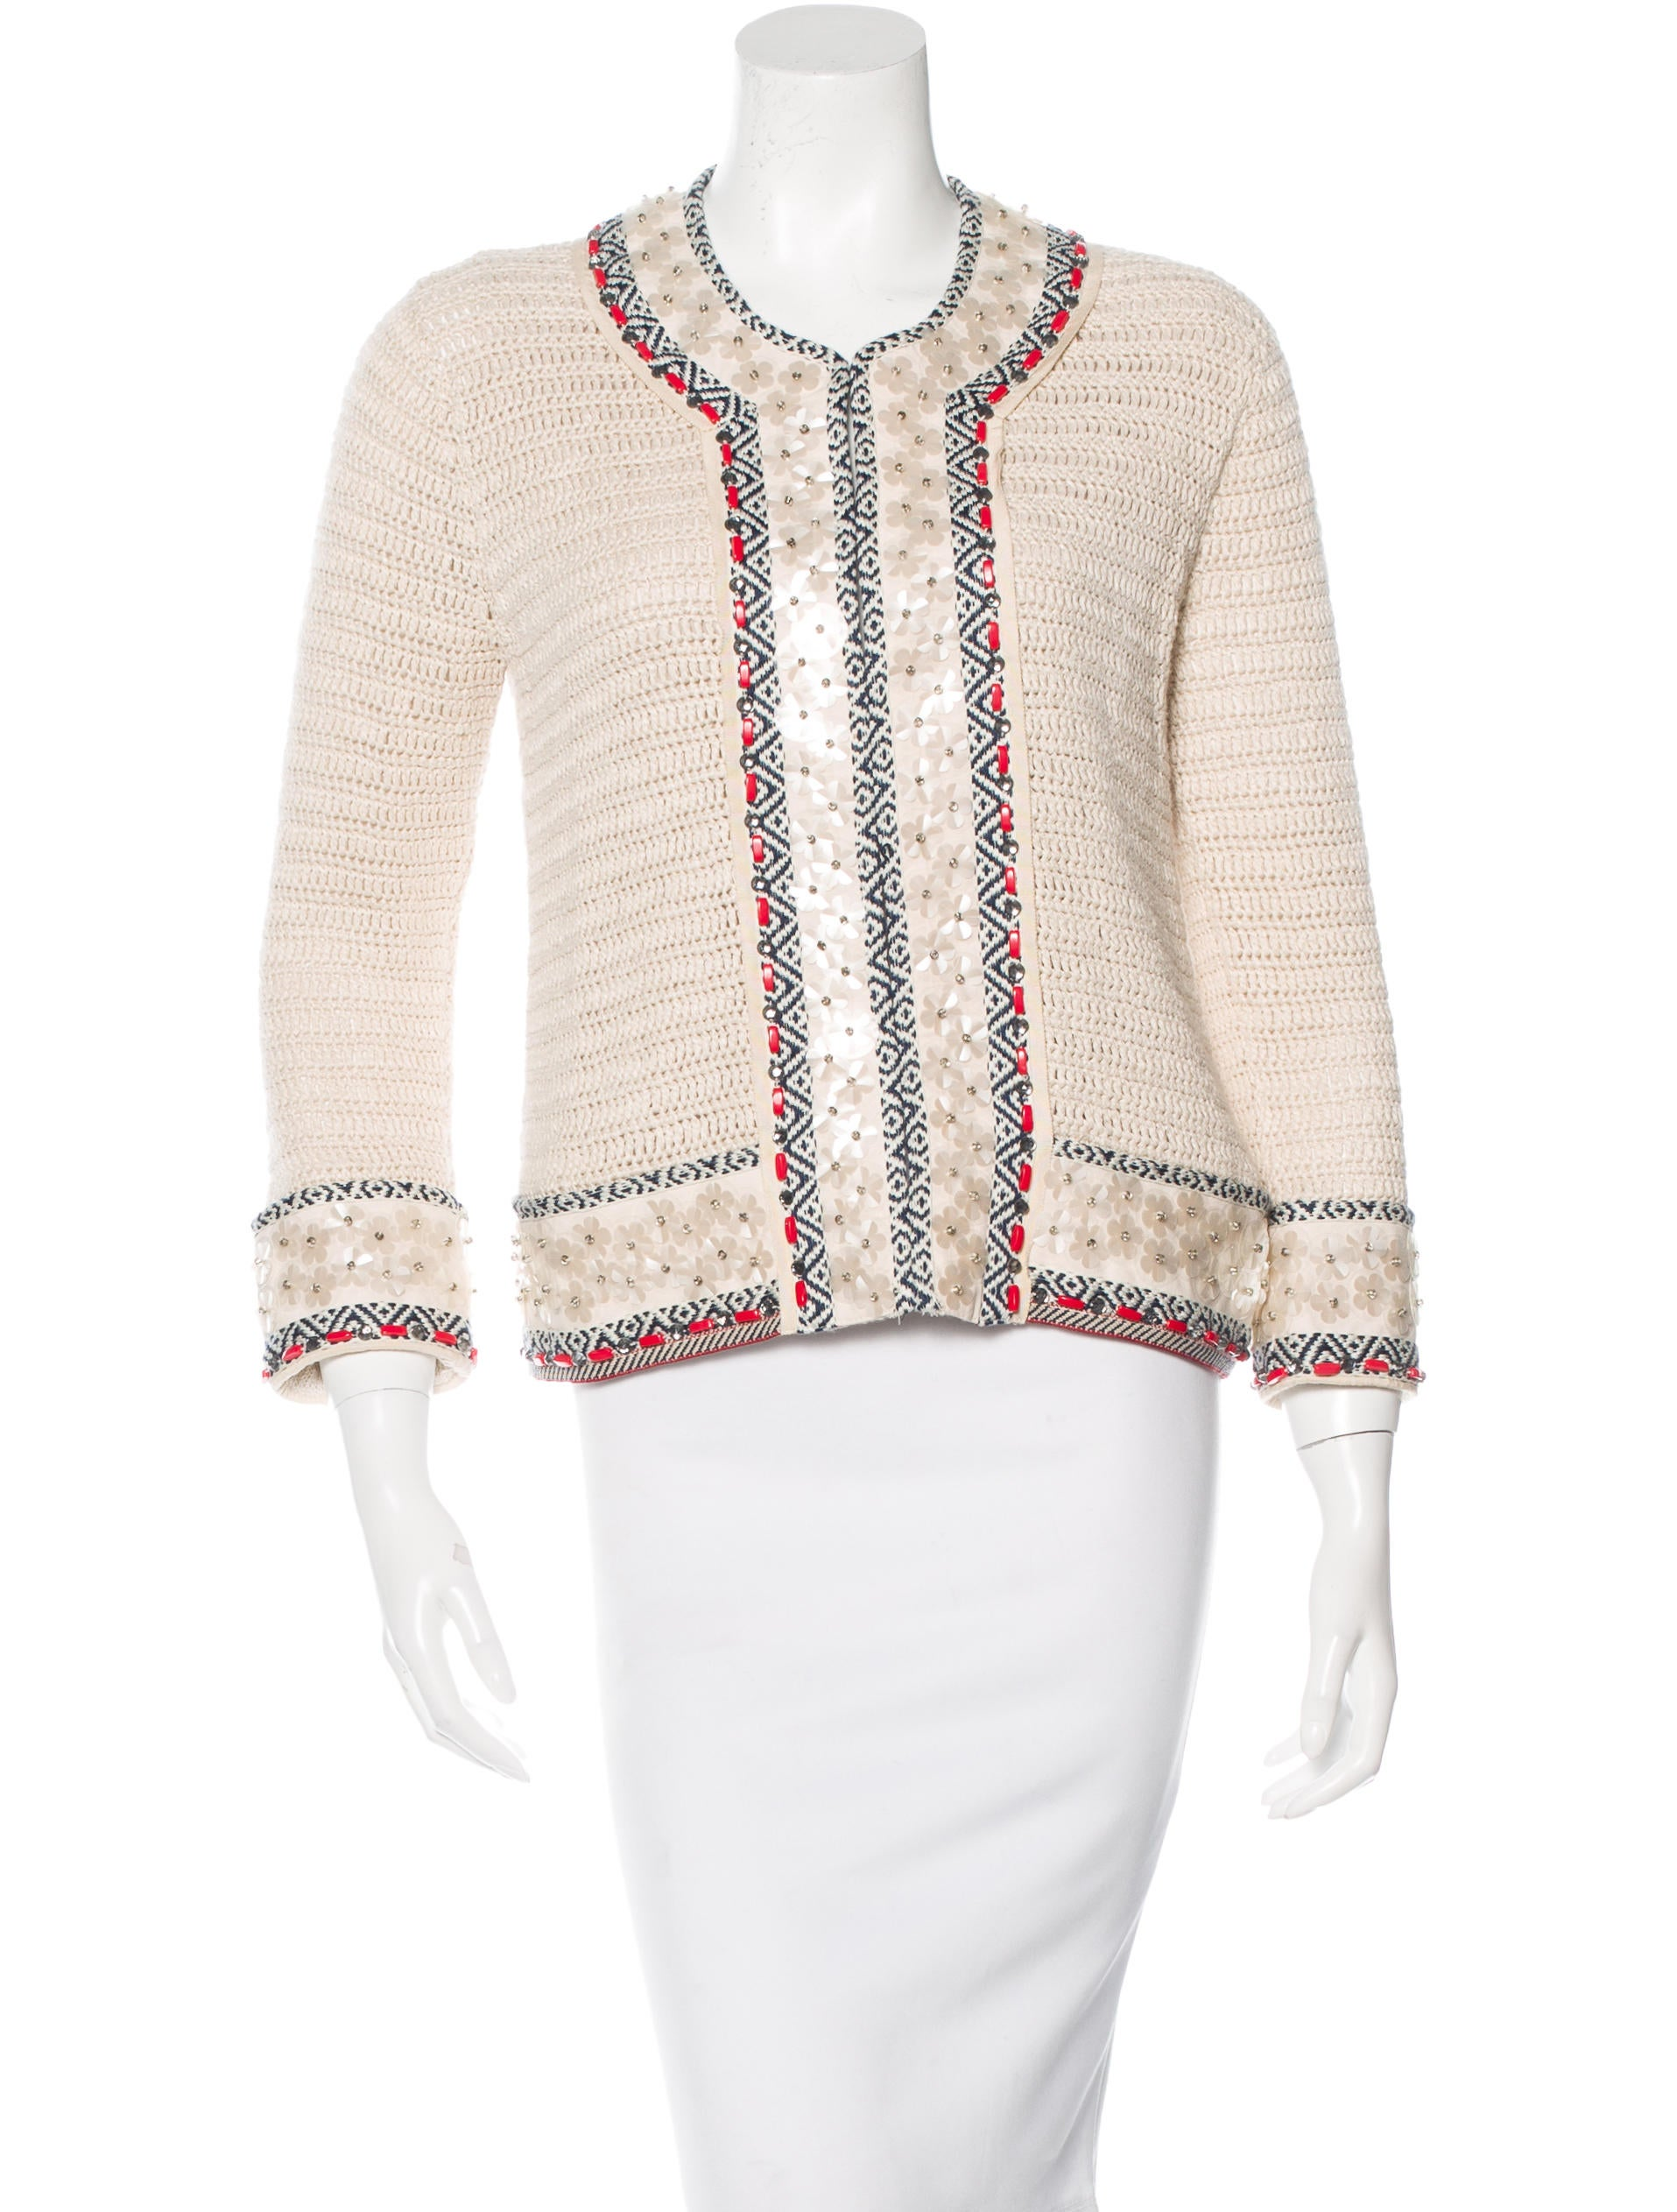 Tory Burch Embroidered Linen Jacket - Clothing - WTO77343 | The RealReal